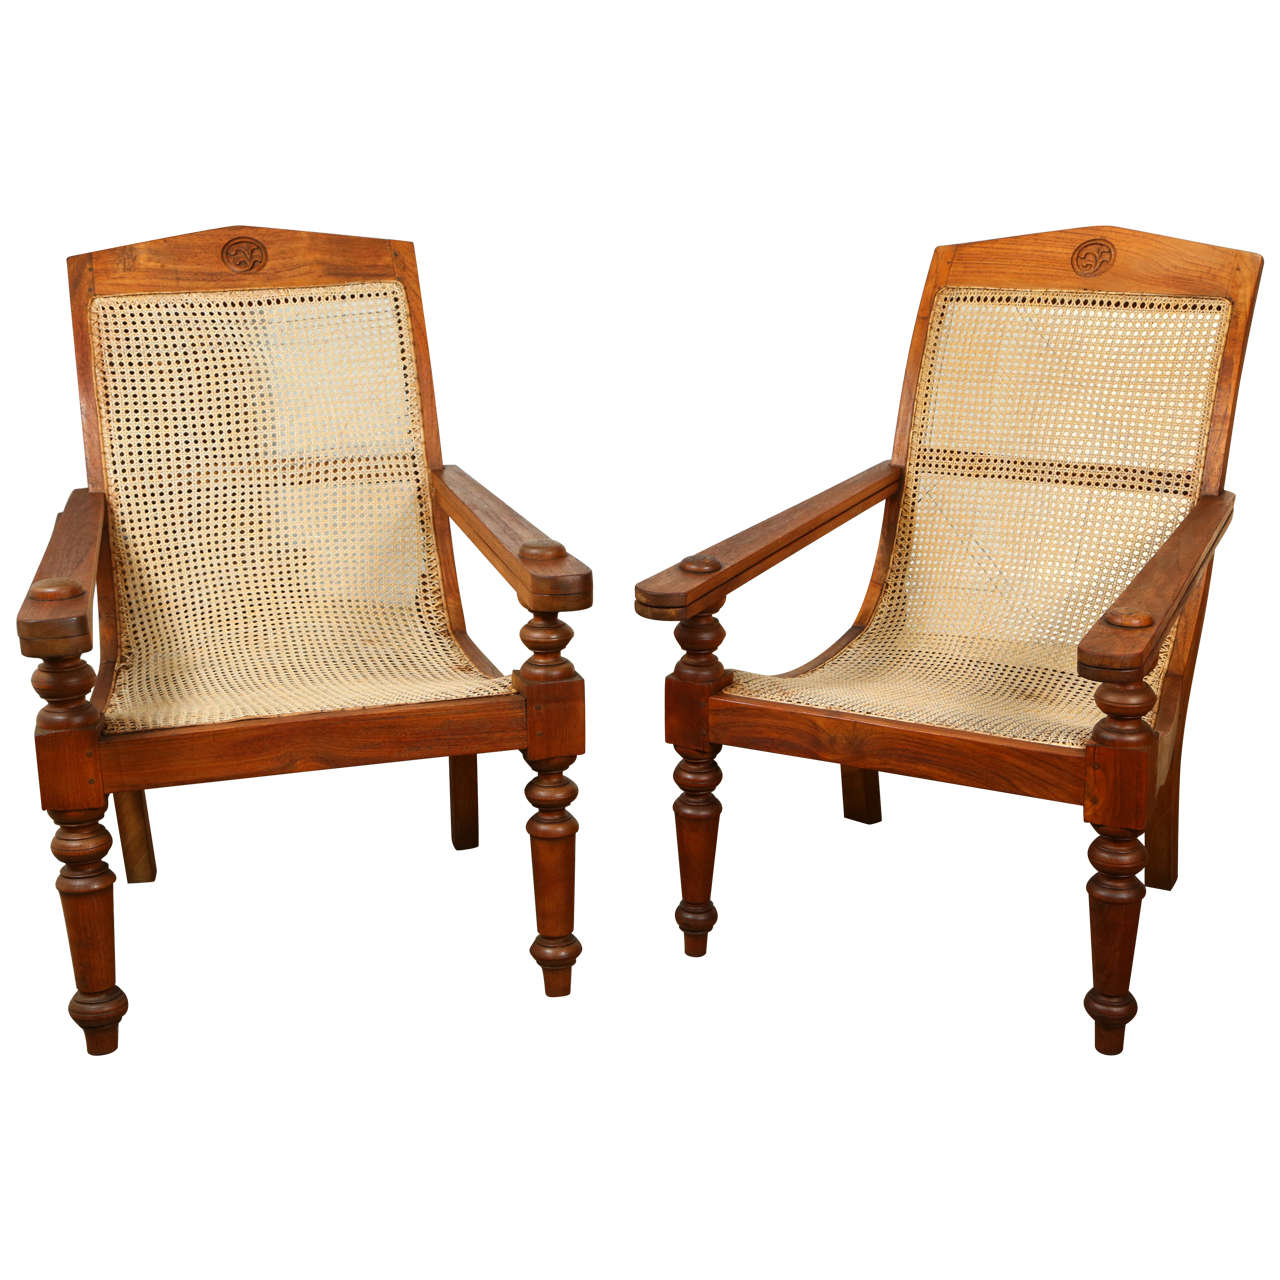 Anglo-Indian Plantation Chairs 1 - Anglo-Indian Plantation Chairs At 1stdibs